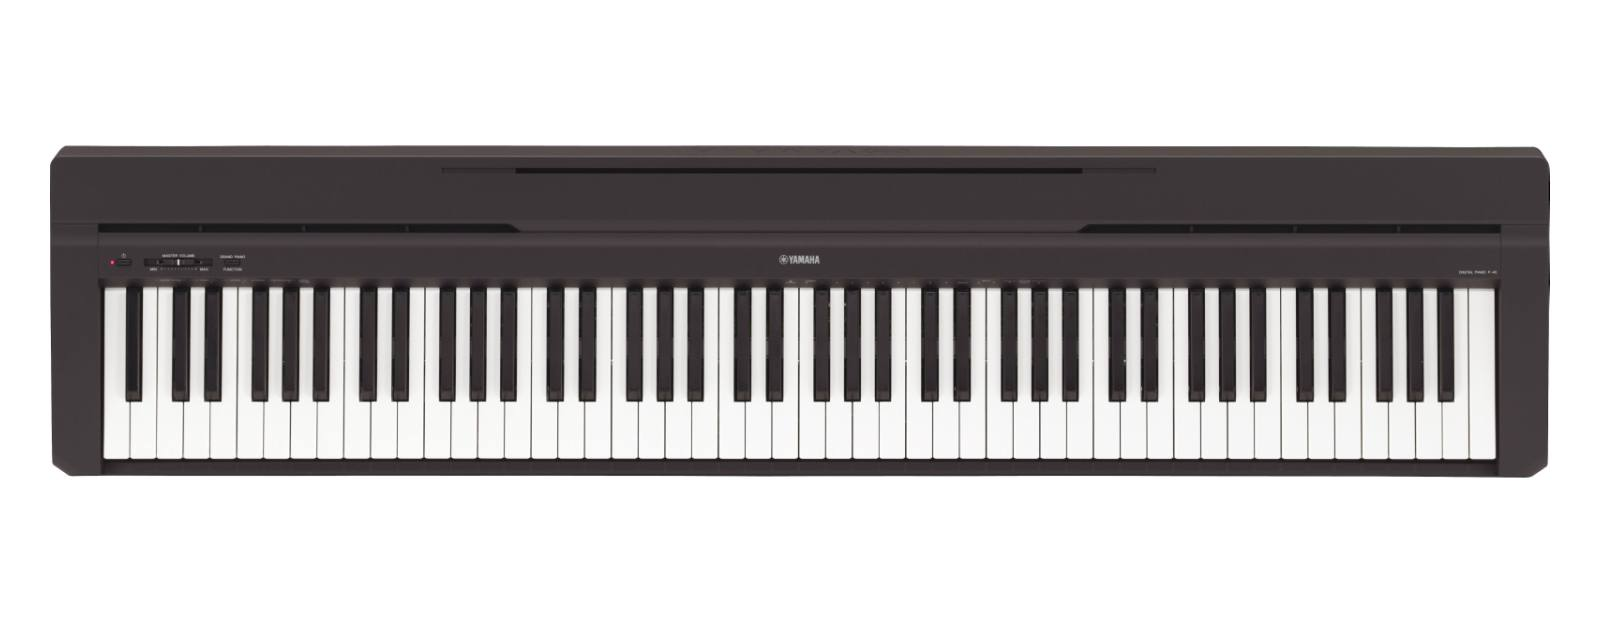 YAMAHA-P-45-STAGE-PIANO-DIGITALE-sku-13866